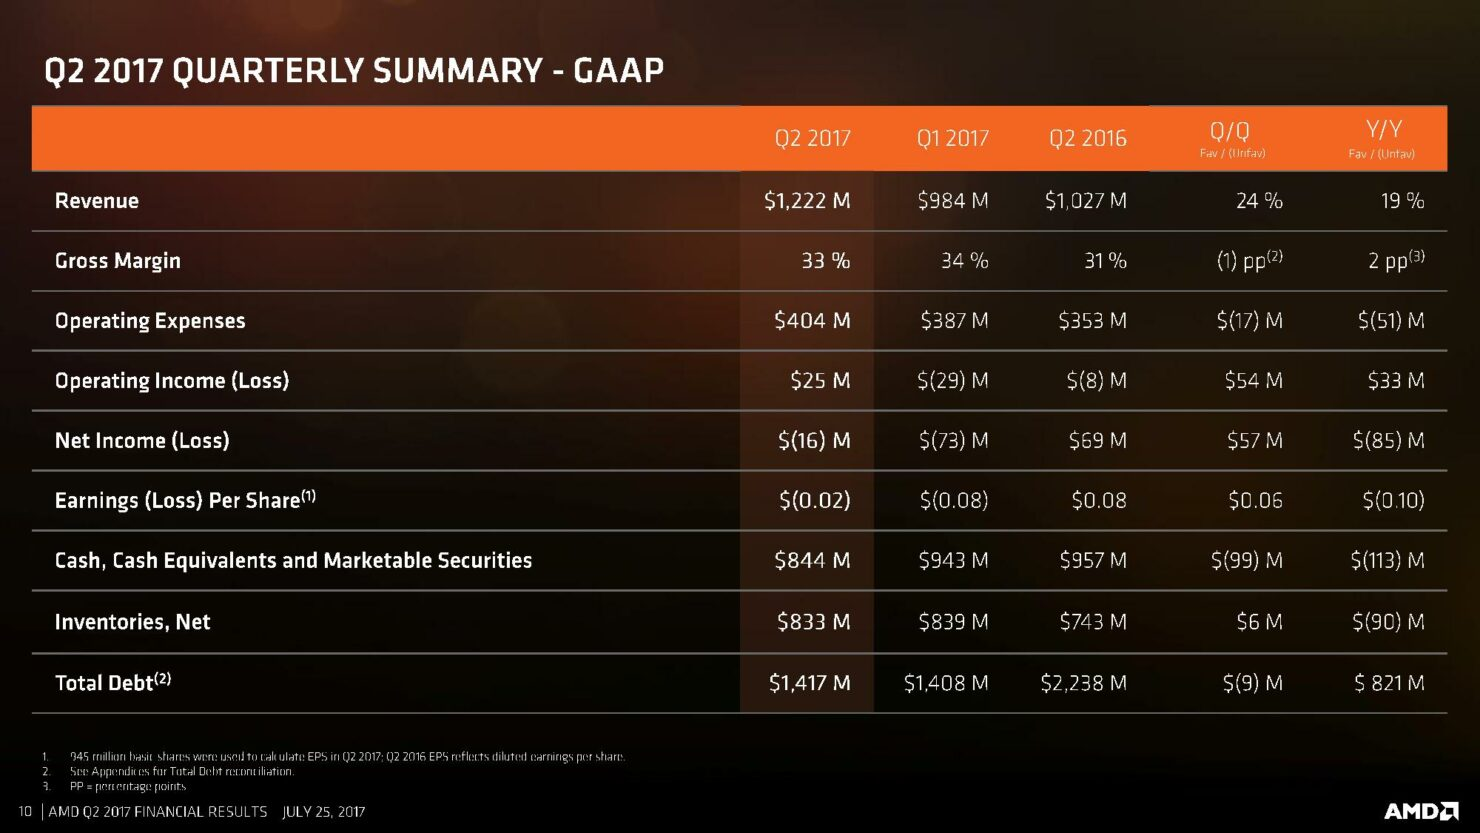 amd-cfo-commentary-slides-q2-17-page-010